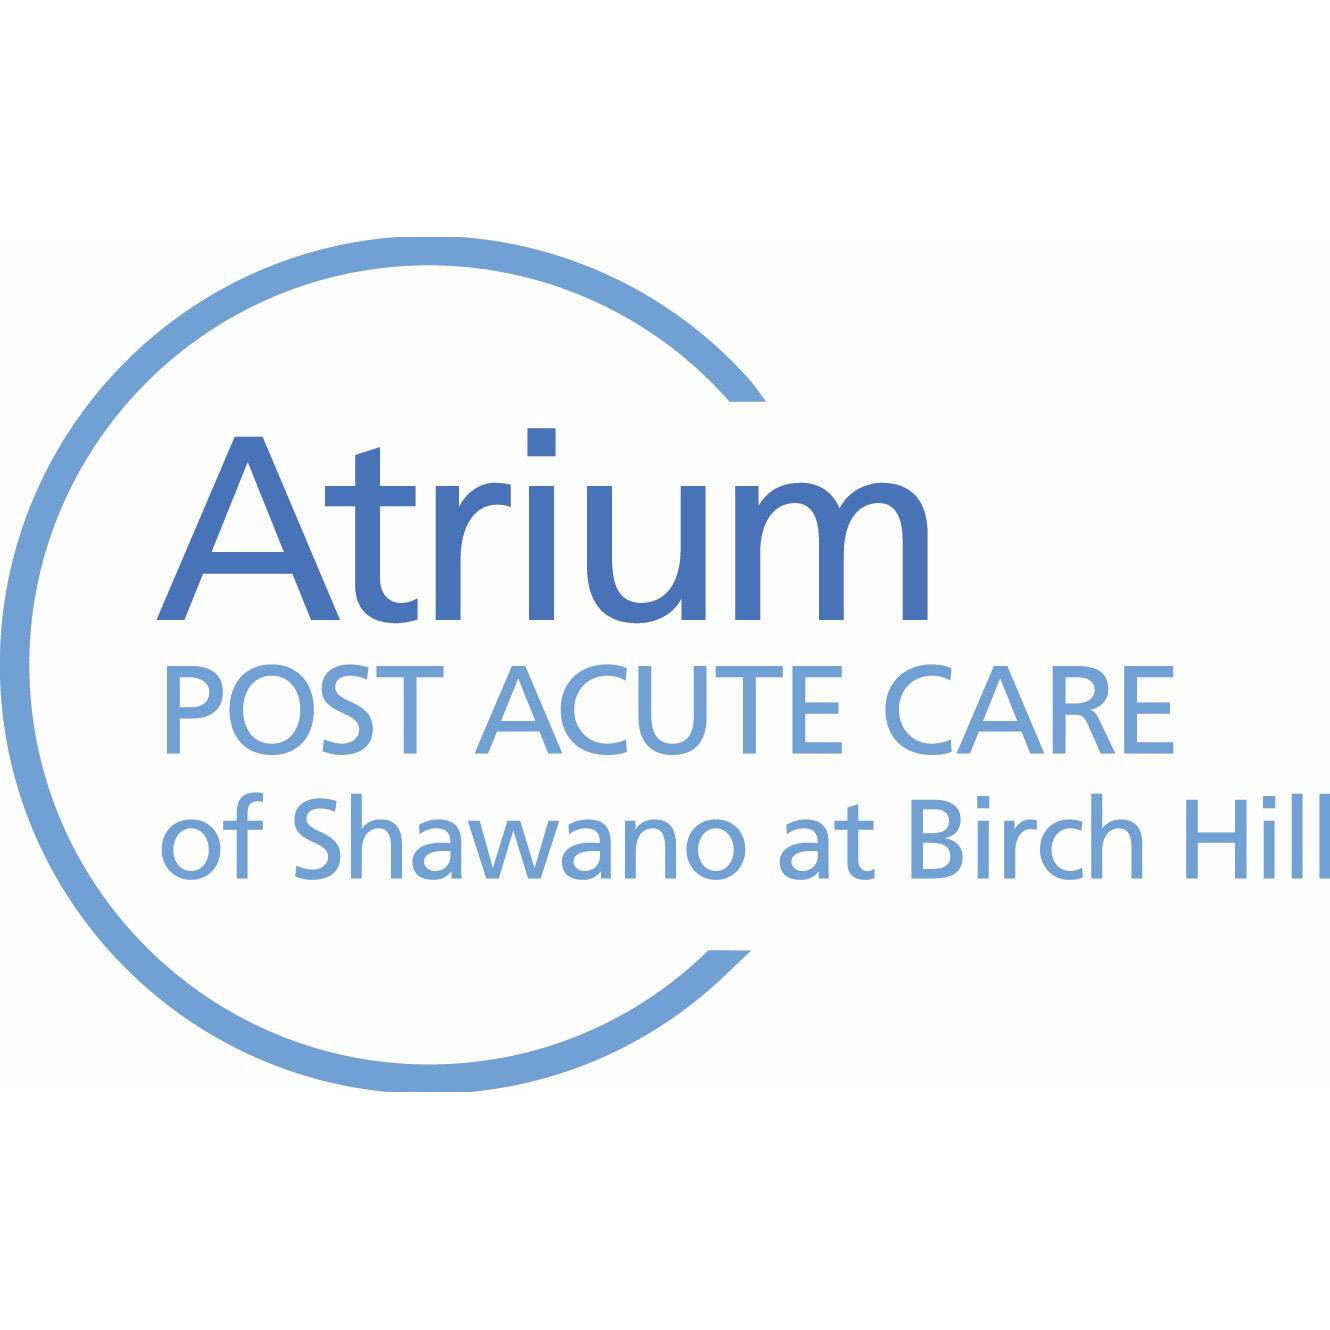 Atrium Post Acute Care of Shawano at Birch Hill